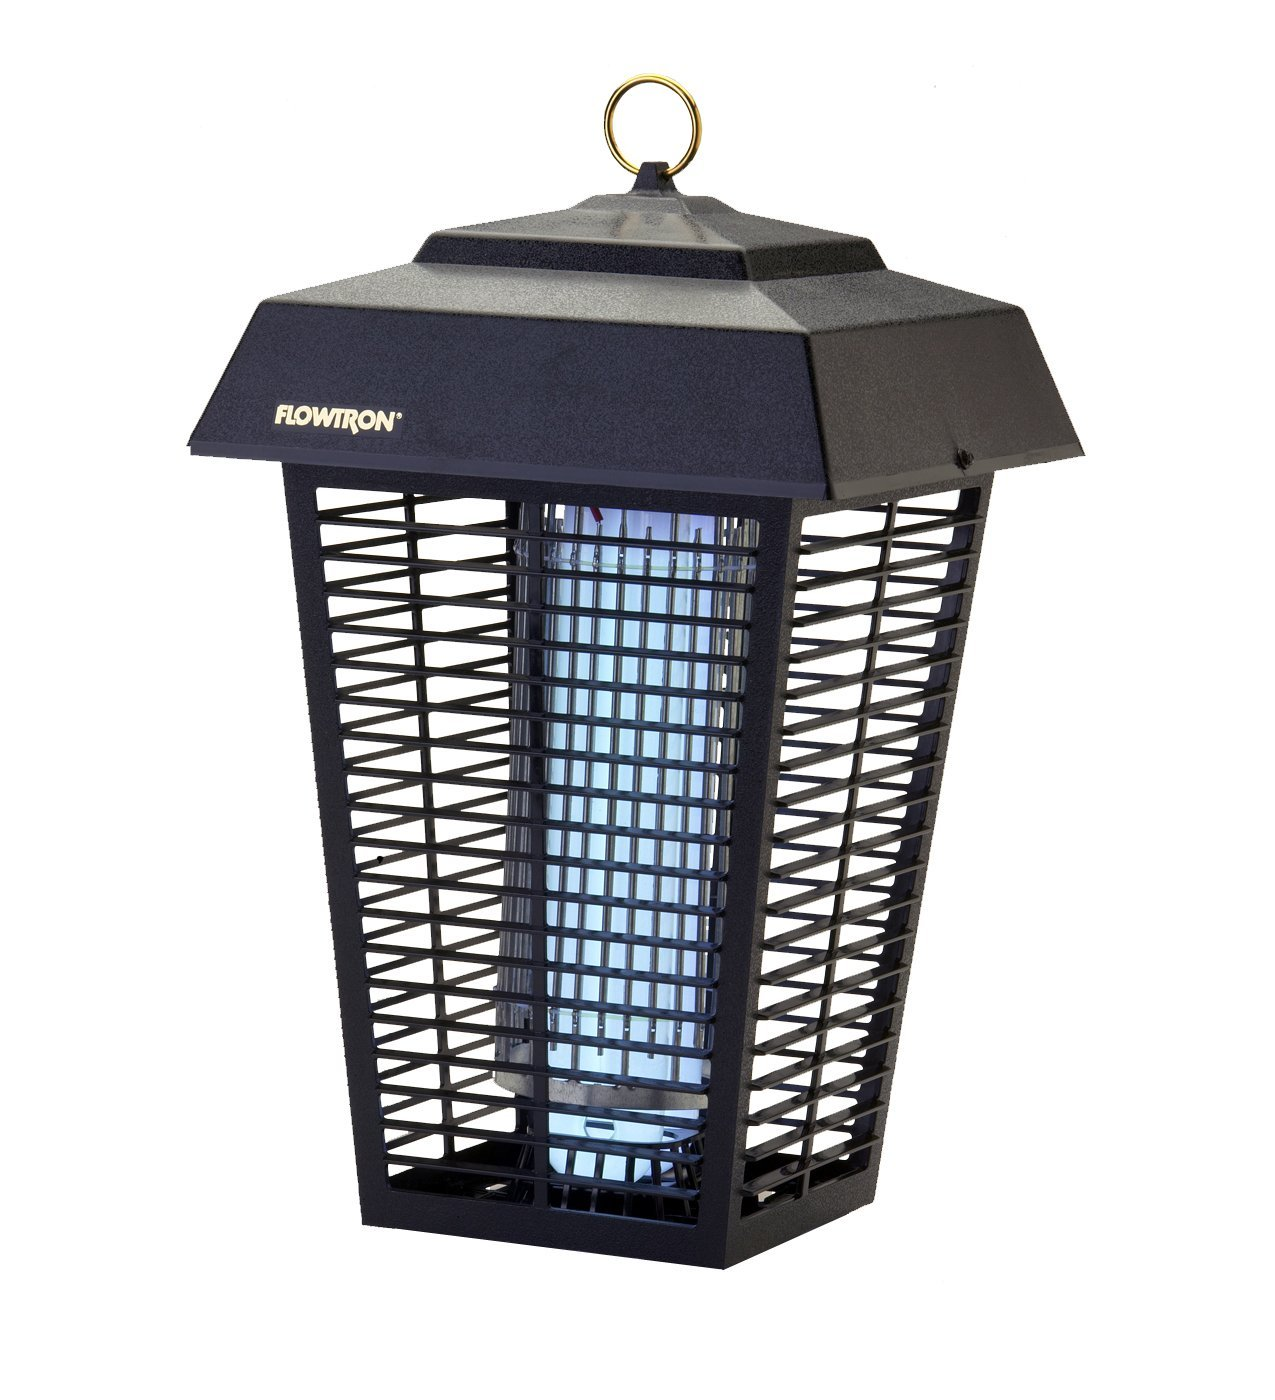 Flowtron Bug Zapper One Acre